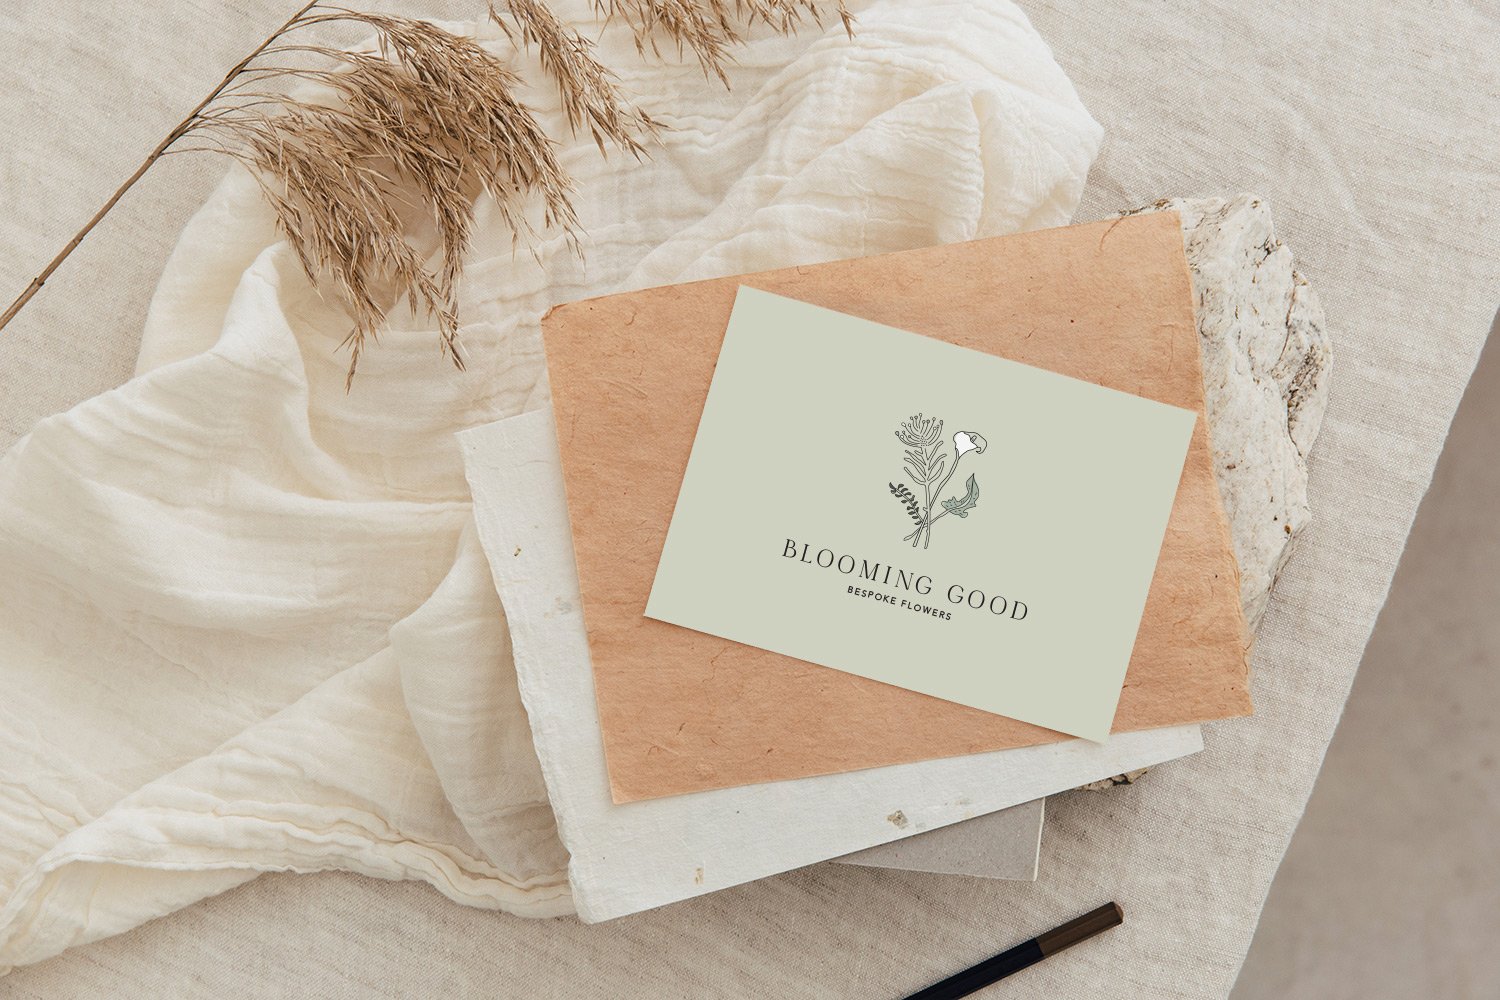 Feminine logo illustration printed on a card with a linen background